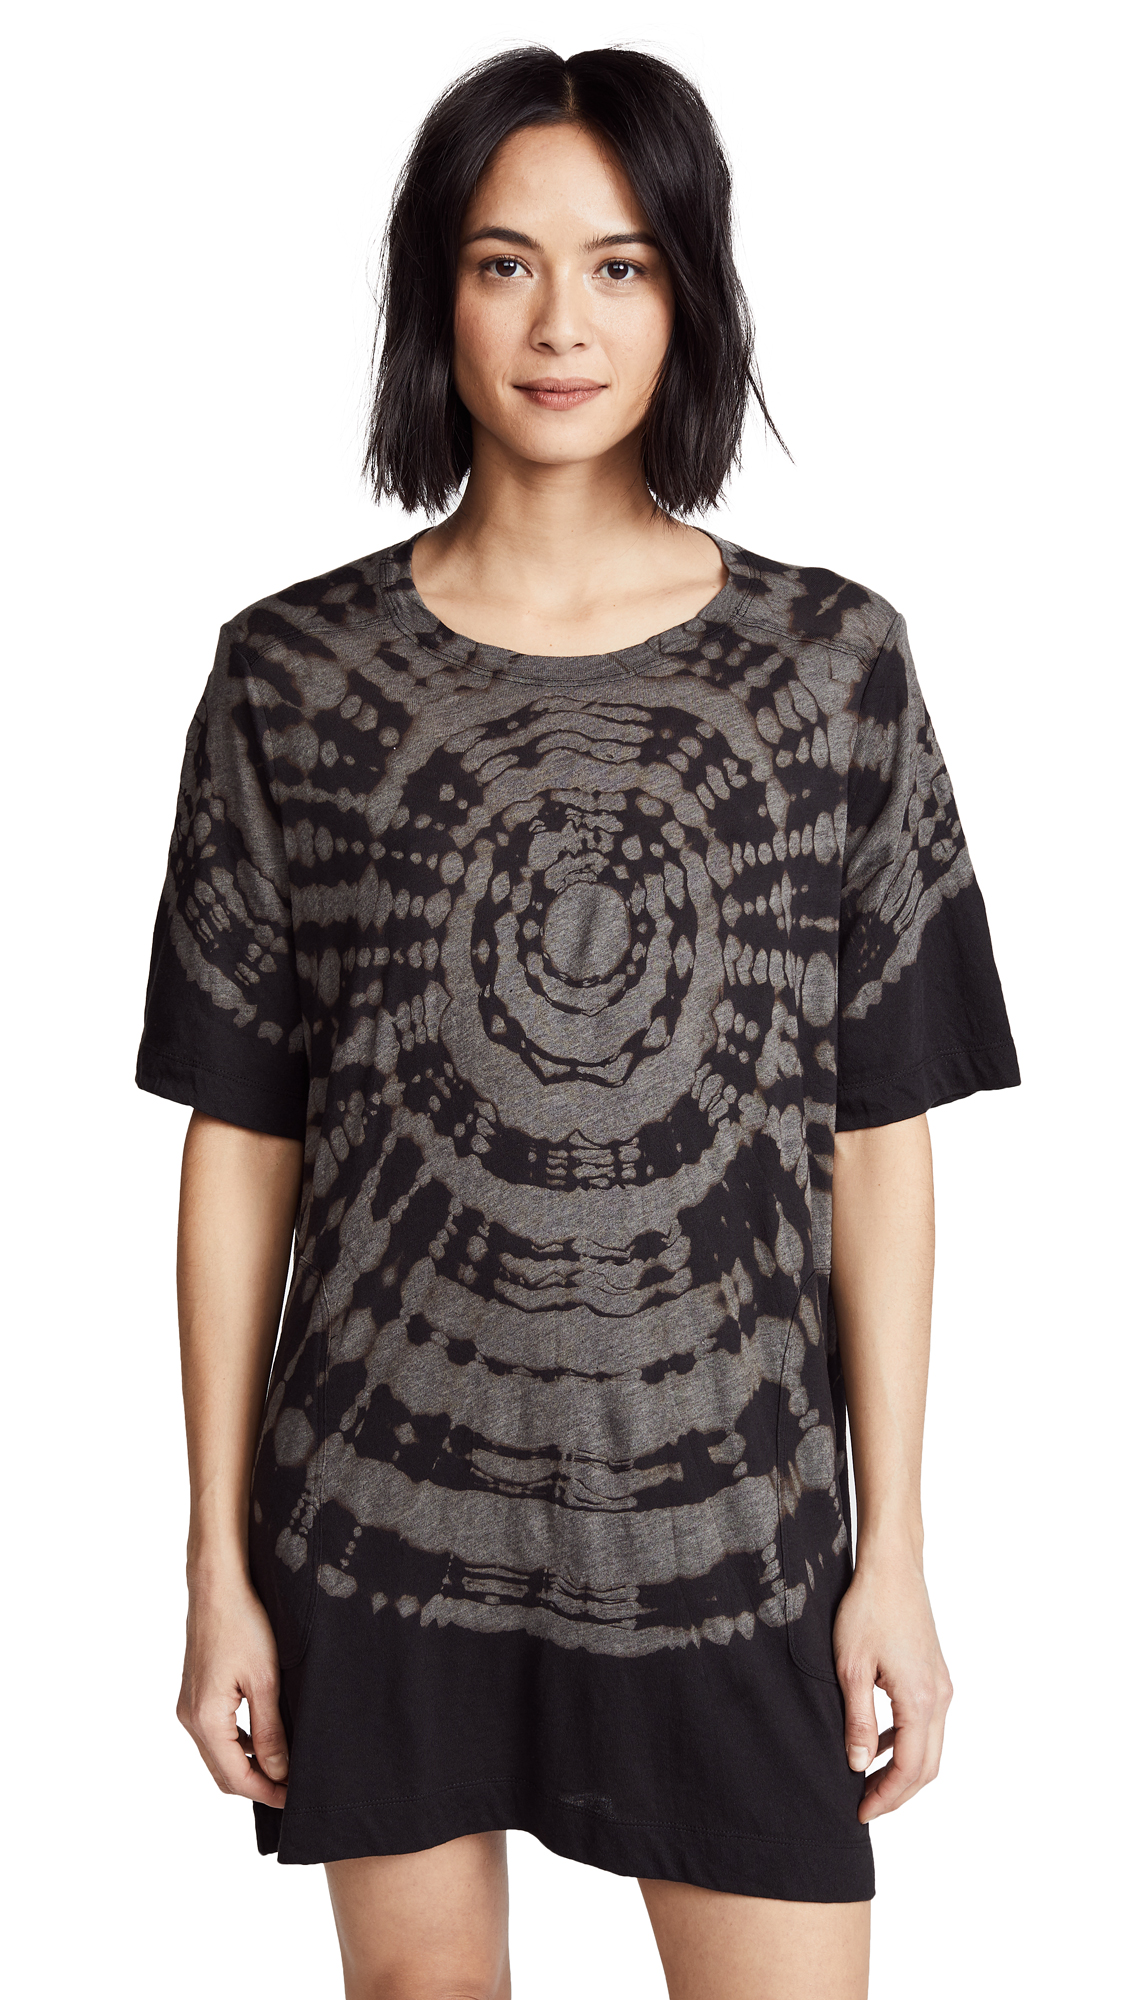 Raquel Allegra T-Shirt Dress In Onyx Tie Dye